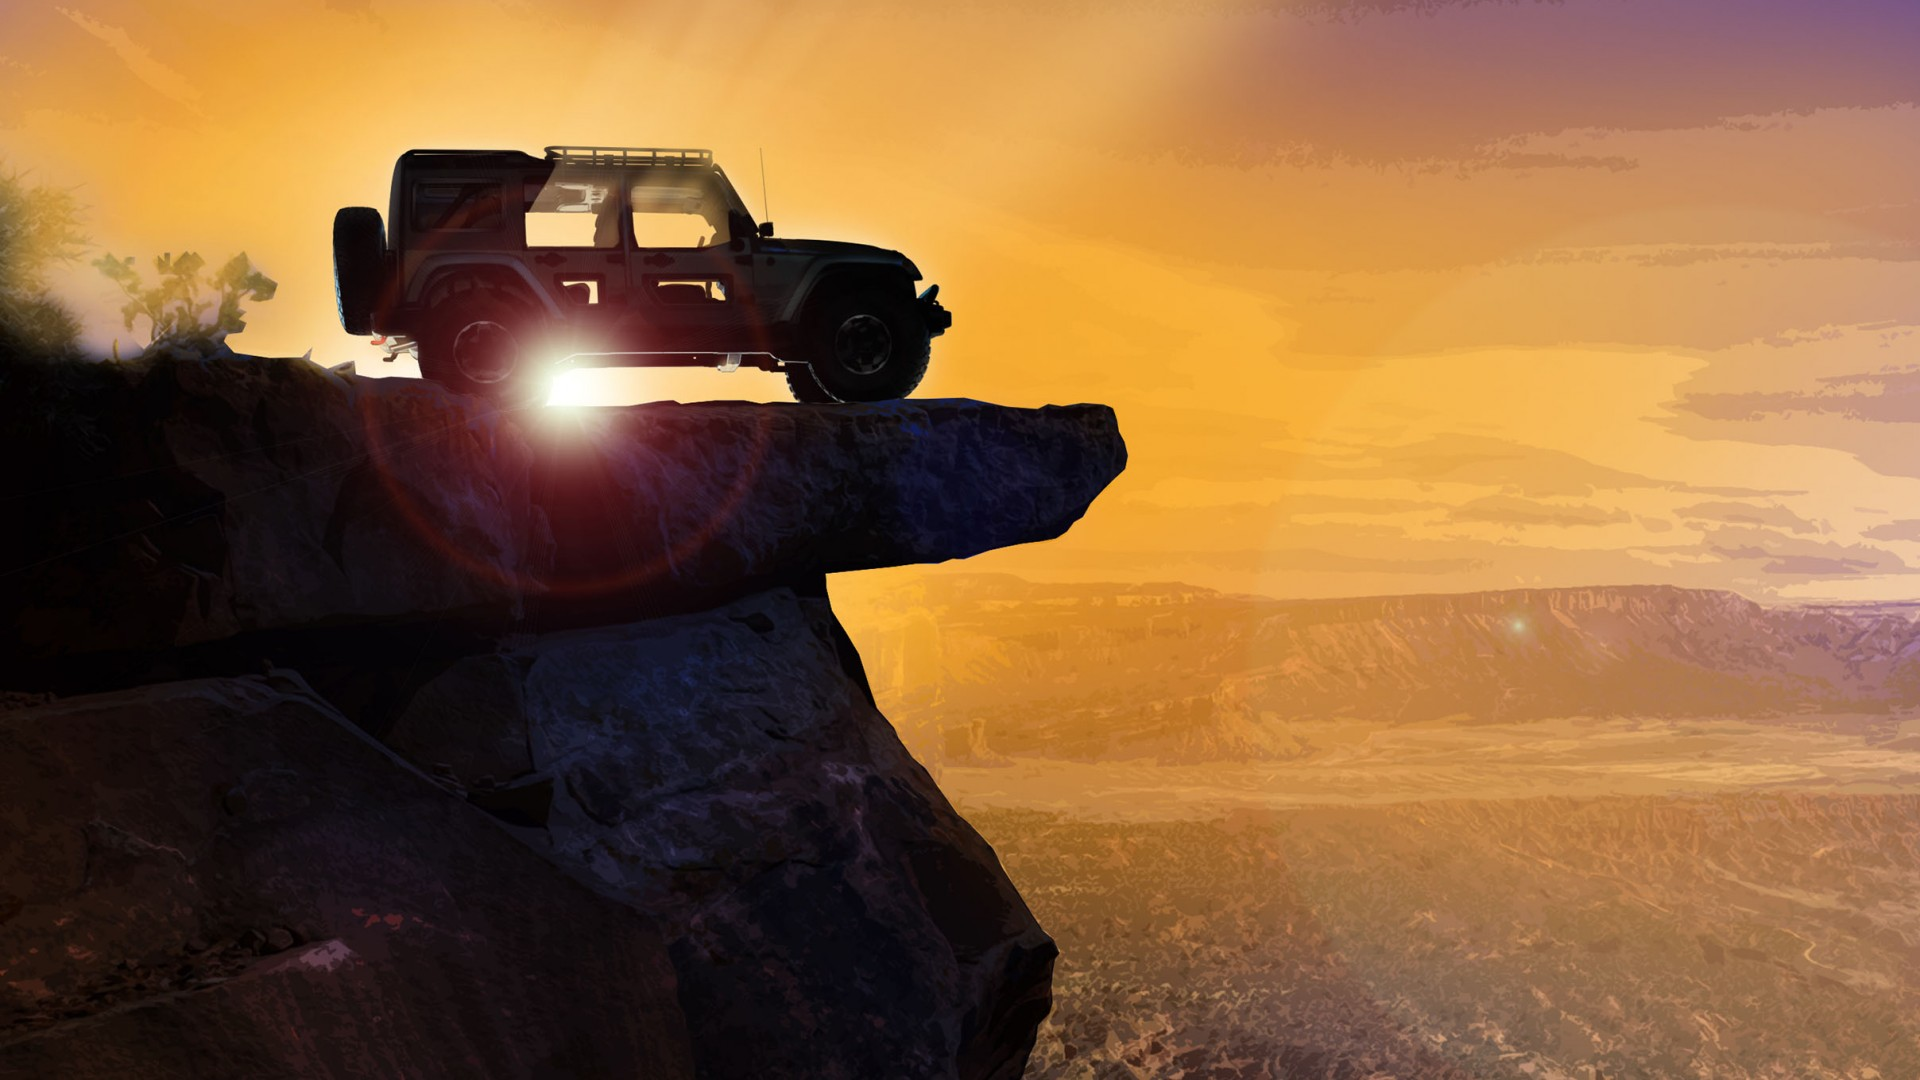 Wallpaper Jeep Switchback Hd Wallpaper Jeep Wrangler Suv Concept Cars Bikes 13333 Page 3